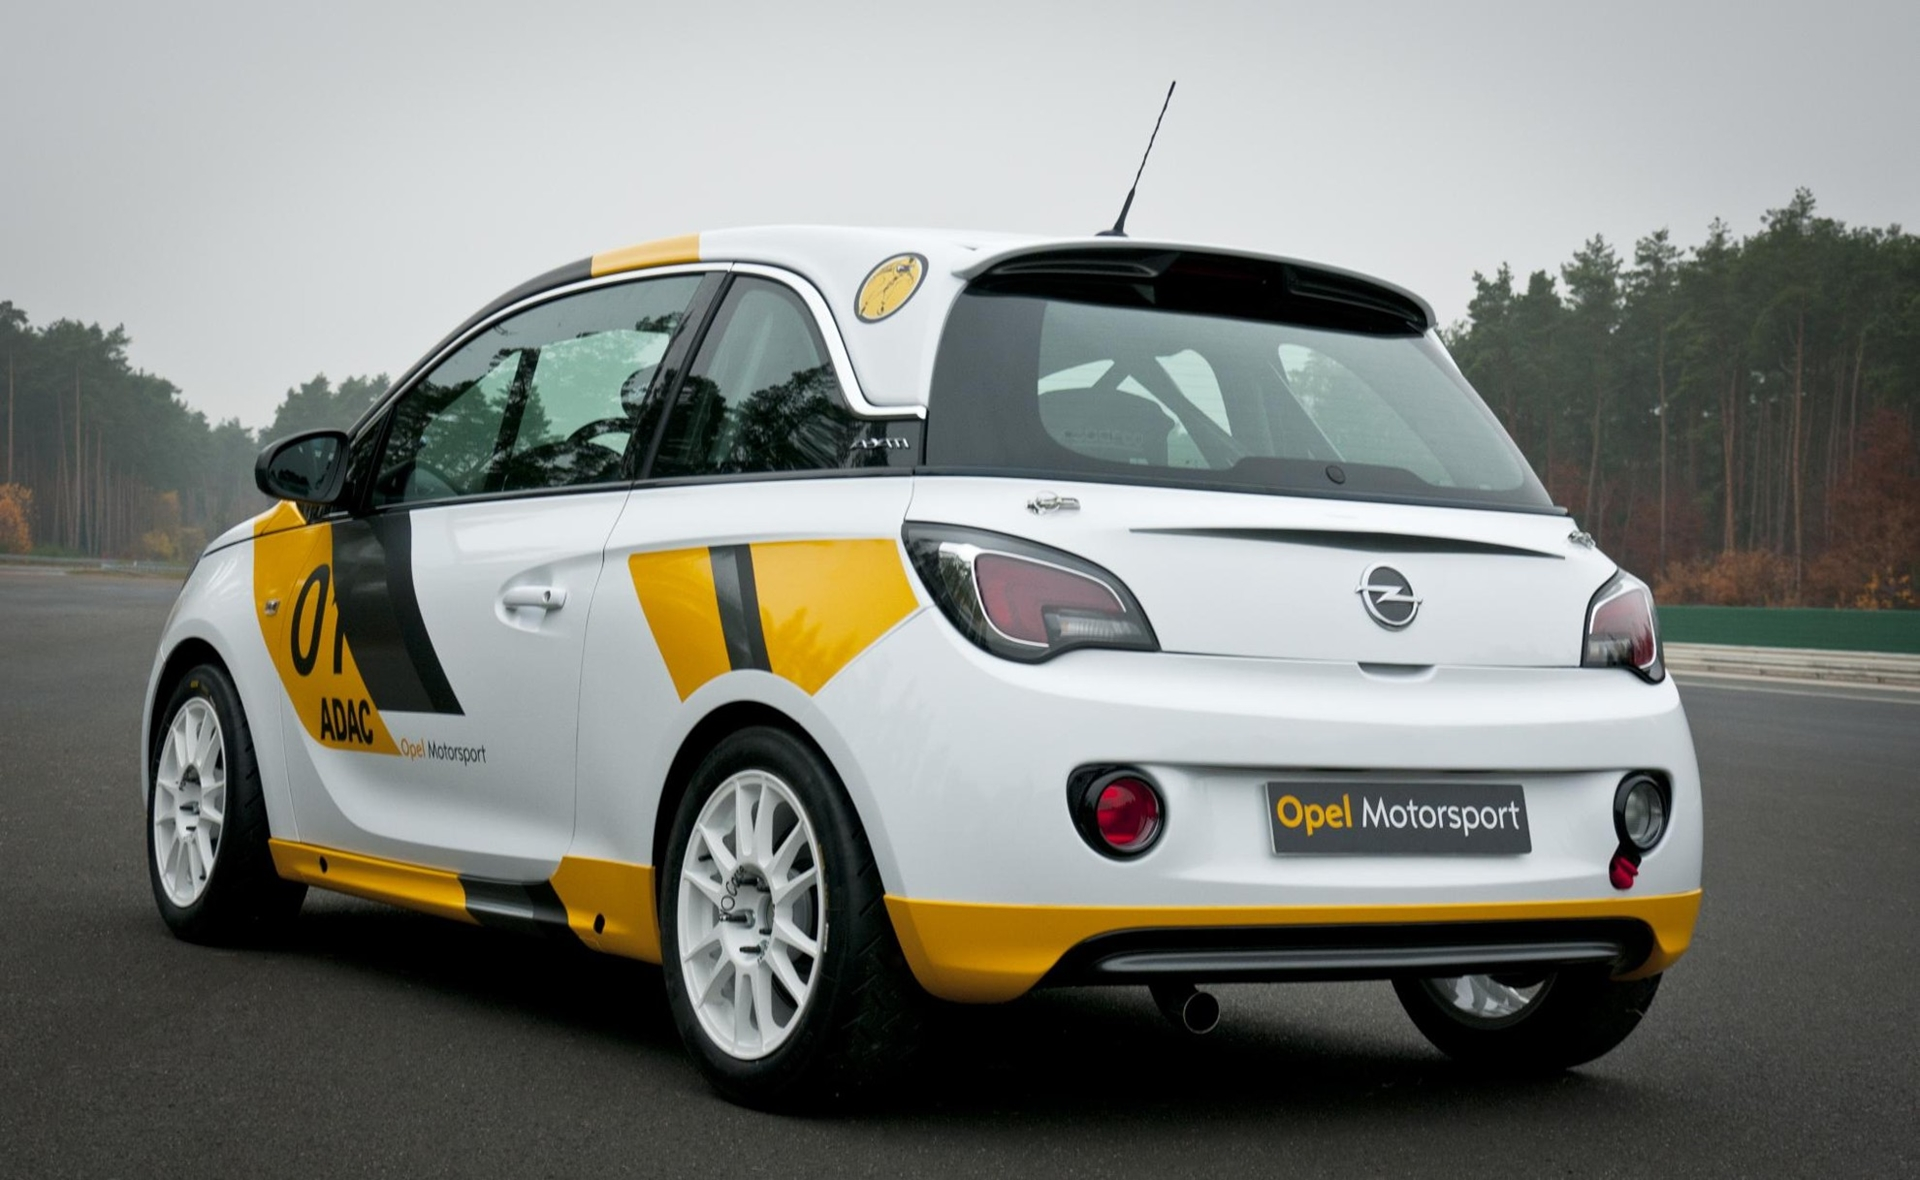 Opel Racing Motorsport